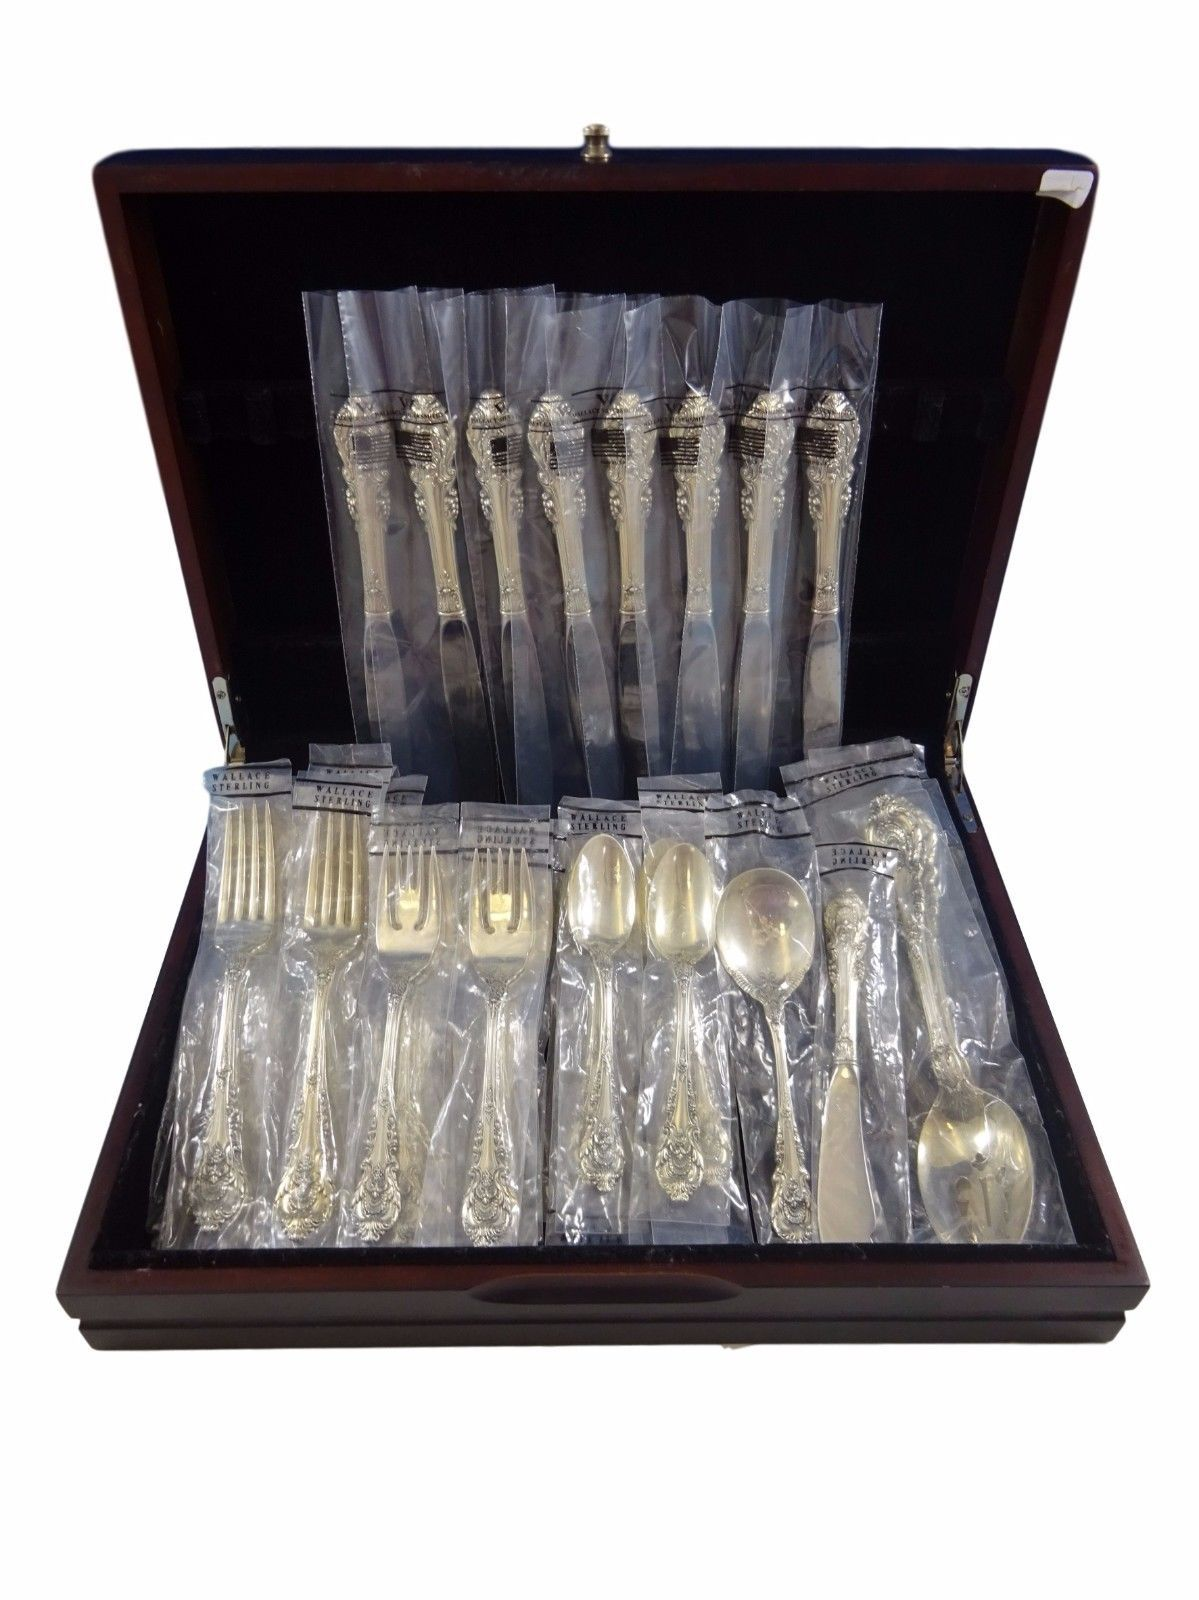 Sir Christopher by Wallace Sterling Silver Flatware Service Set 36 Pieces  New - $1,876.73 · Advanced search for Antiquecupboard Flatware - Antiquecupboard Flatware: 166 Listings